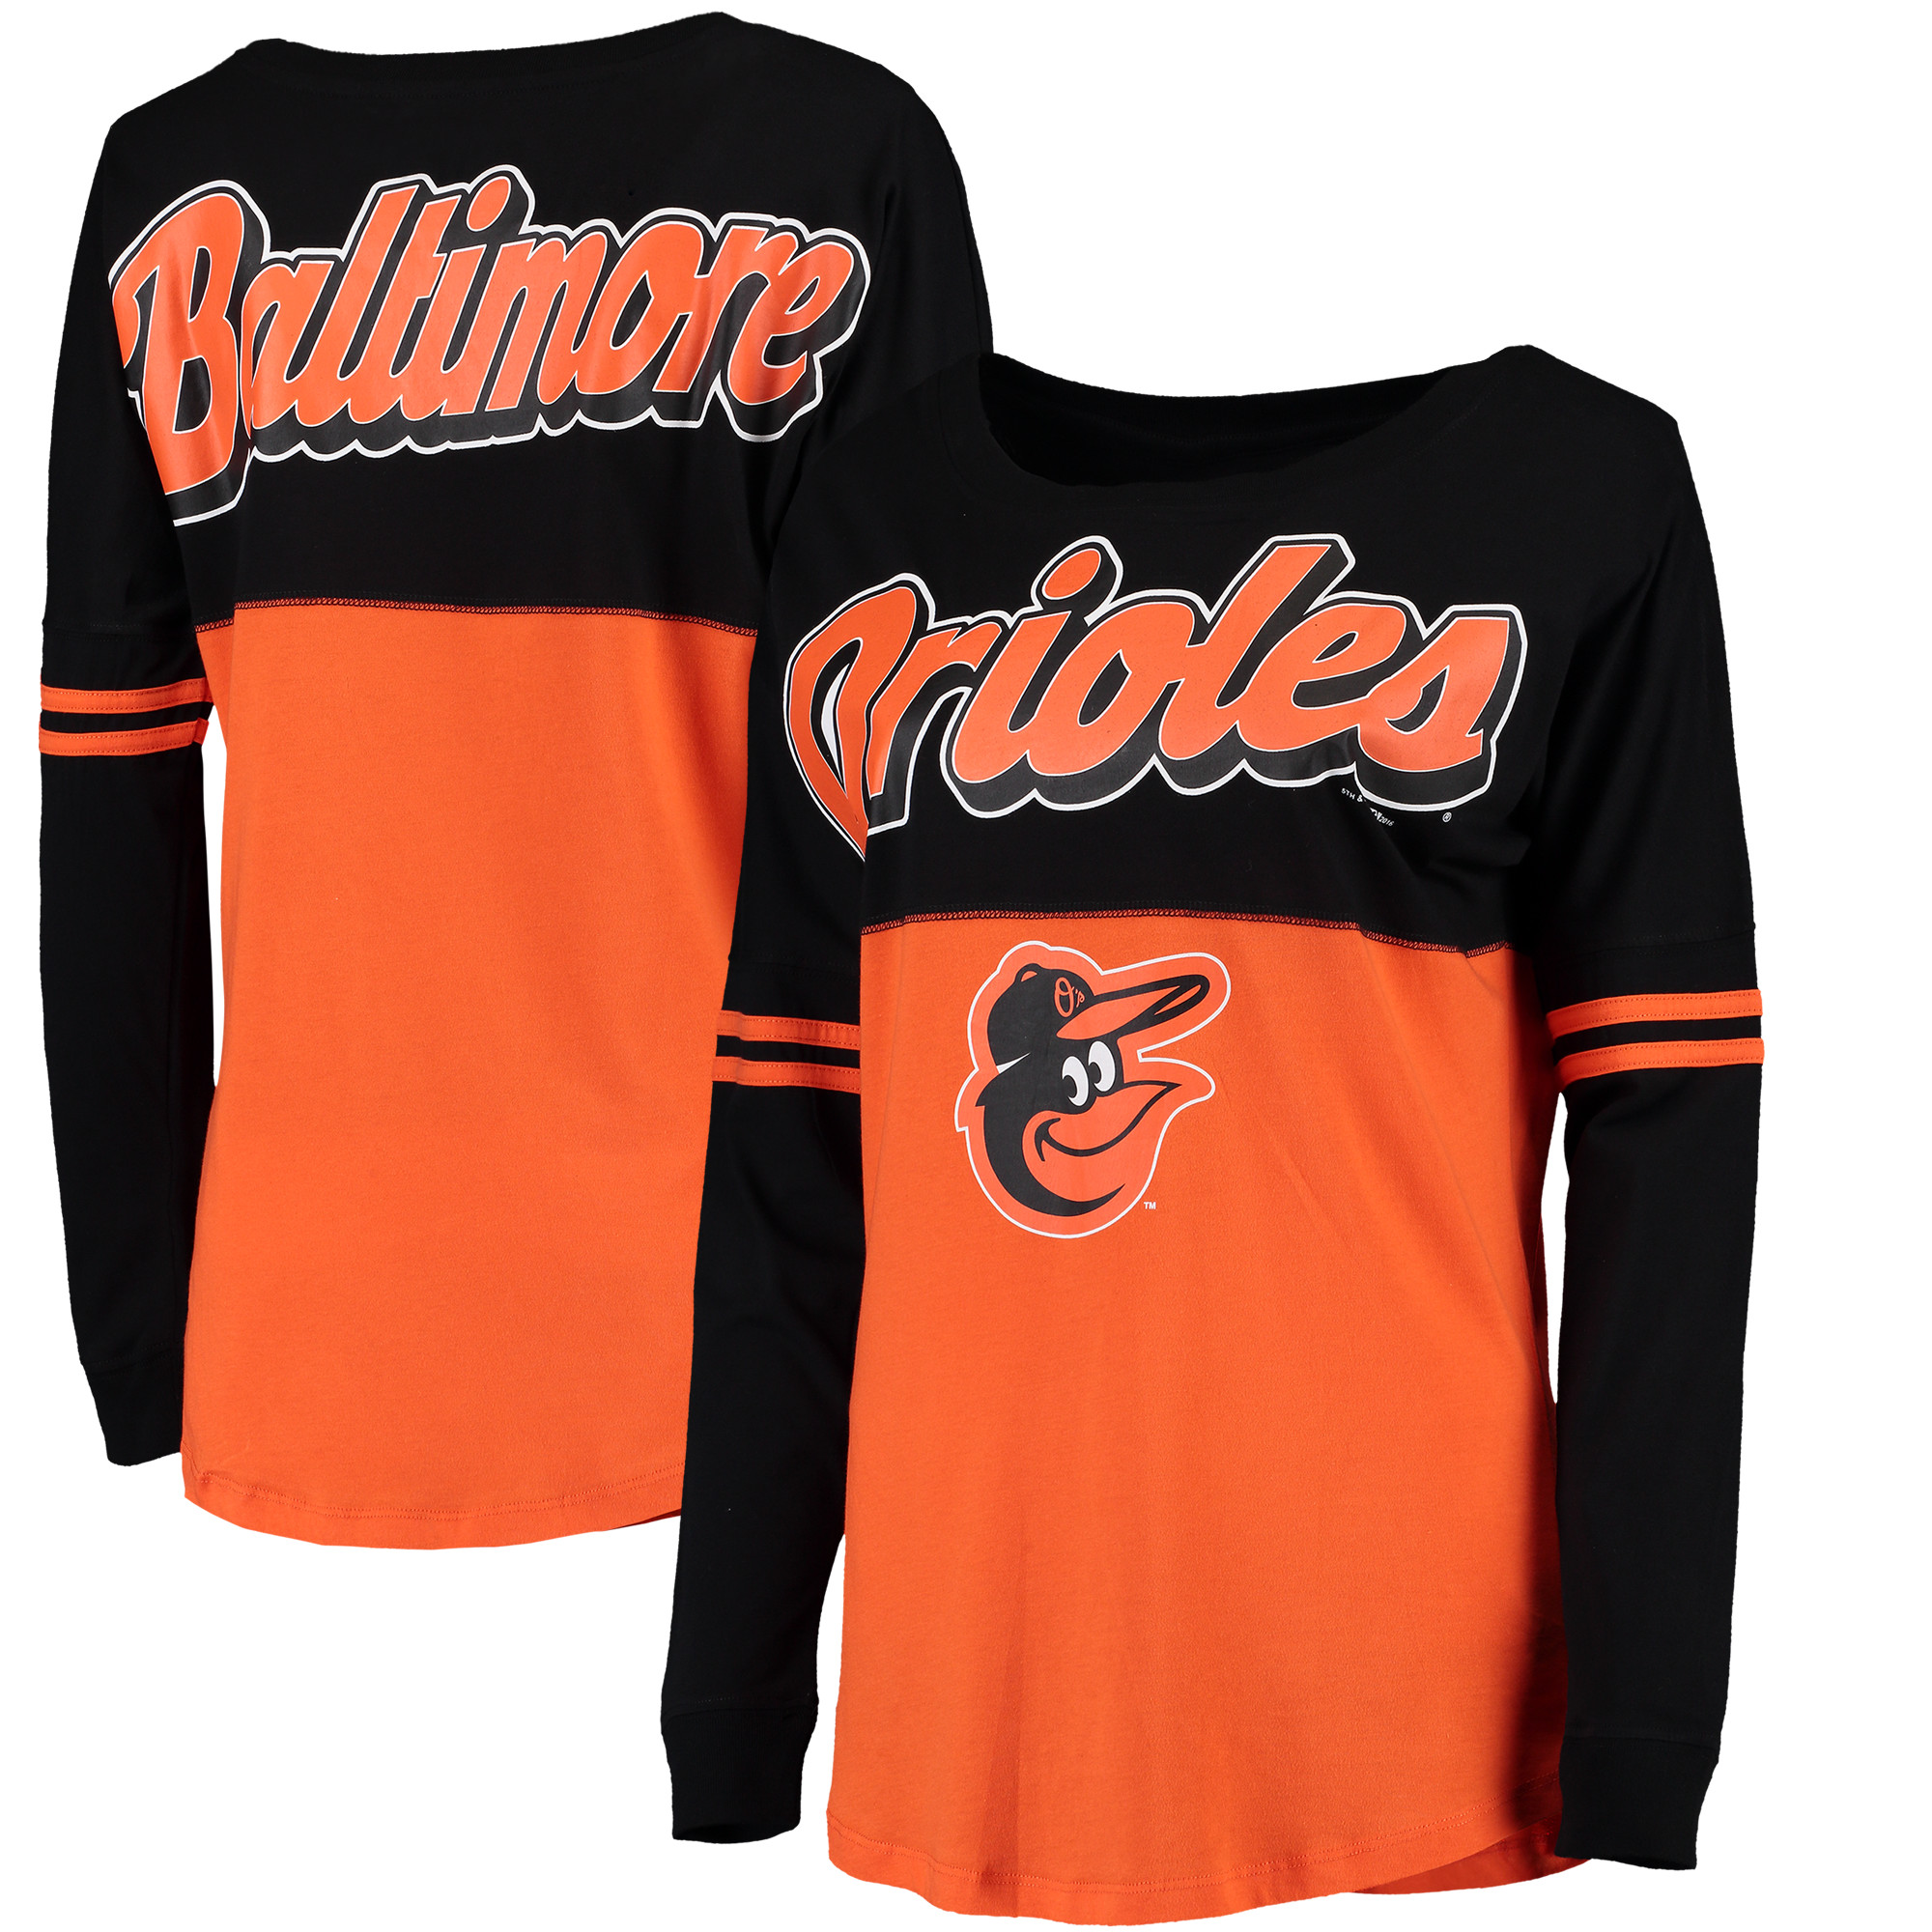 Baltimore Orioles 5th & Ocean by New Era Women's MLB Baby Jersey Varsity Crew Boyfriend Long Sleeve T-Shirt - Orange